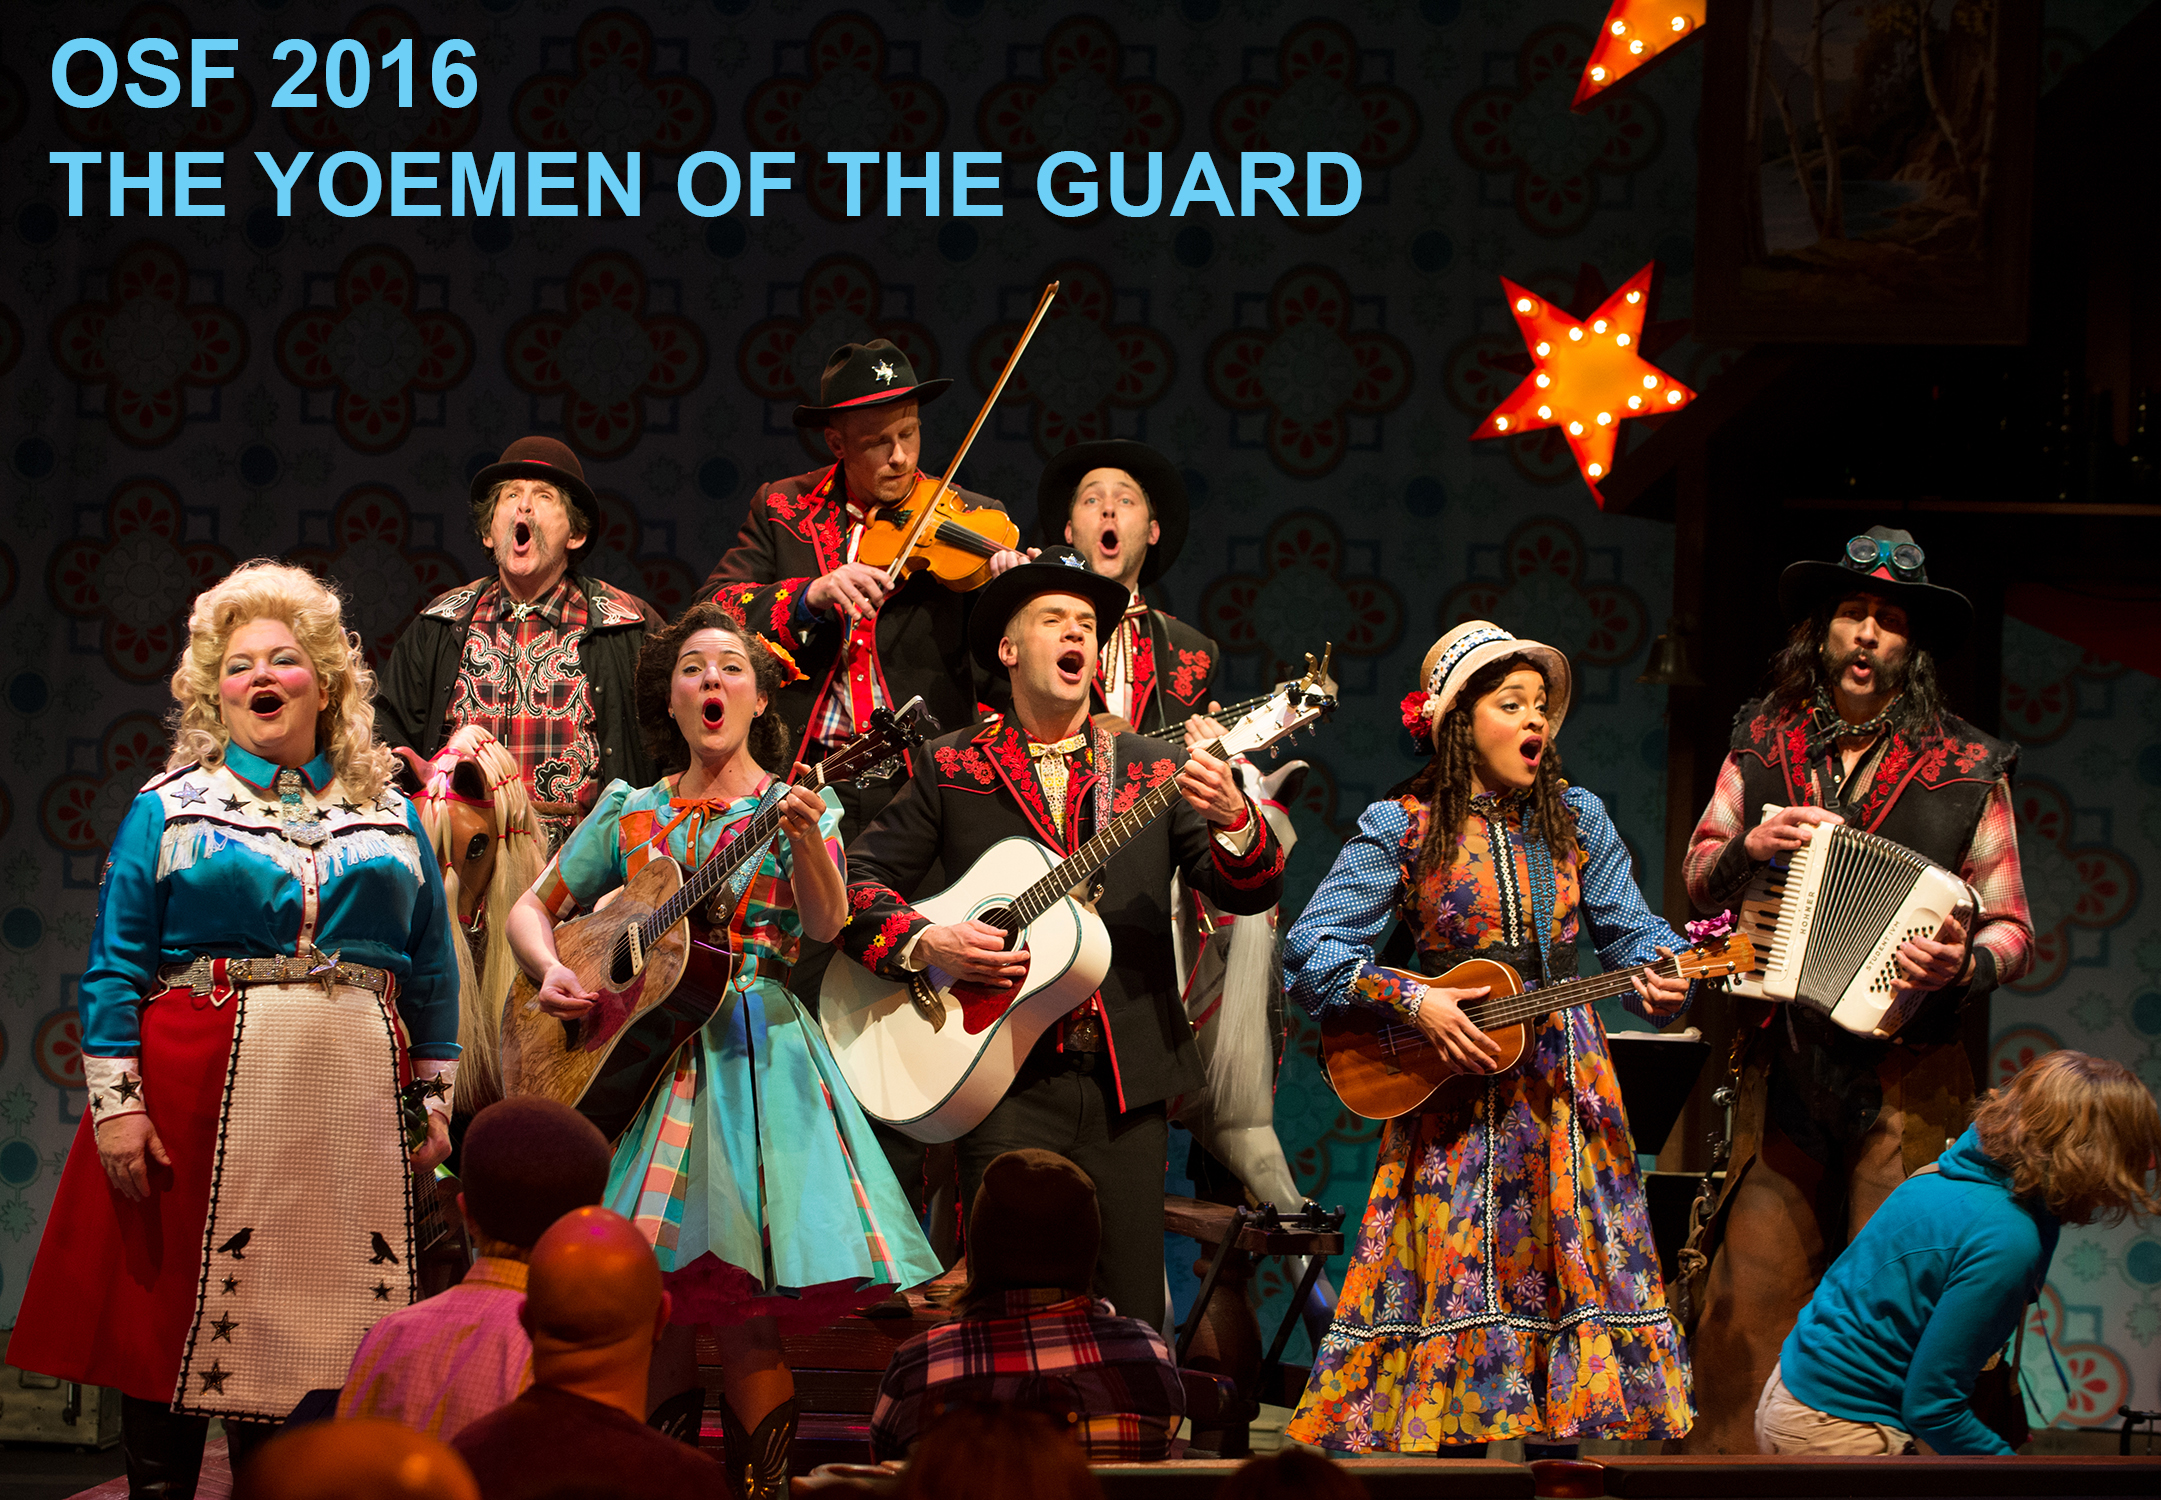 OSF 2016 YOEMEN OF THE GUARD